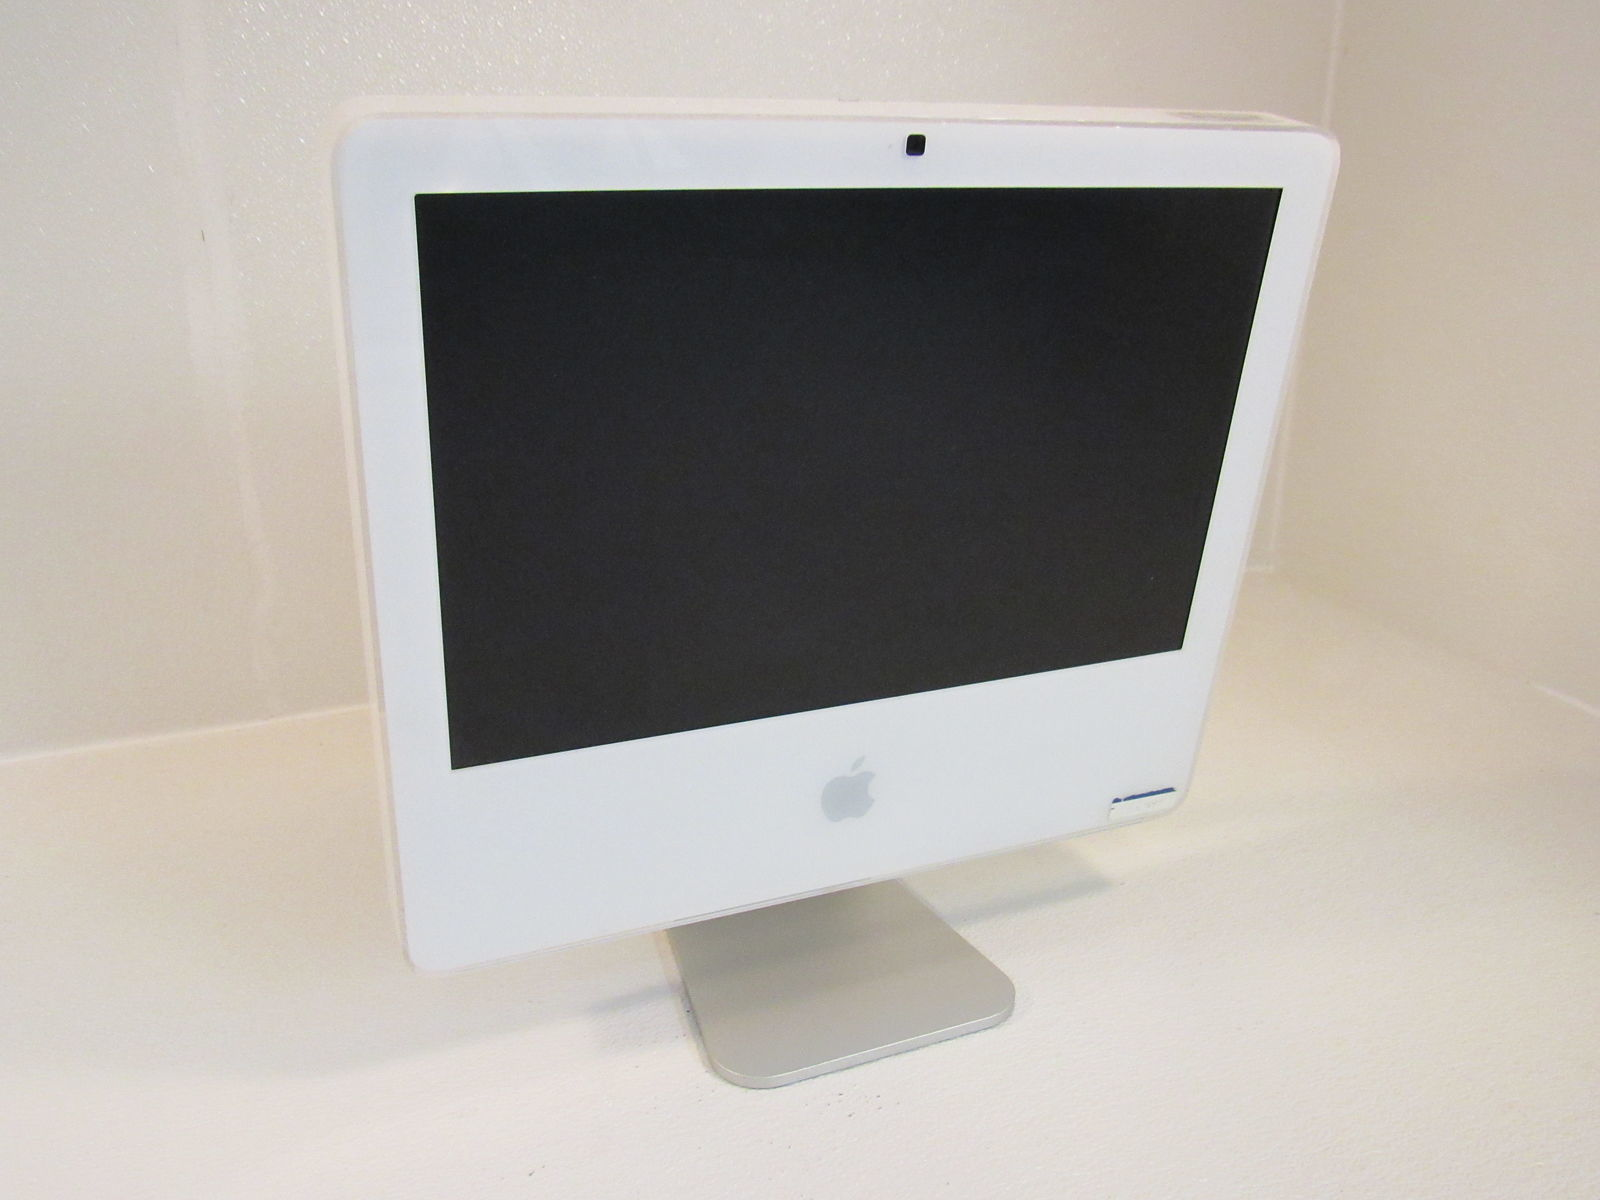 Apple iMac 4.1 All In One 17 Inch Computer 160GB HD 1.83GHz Intel Duo Core A1173